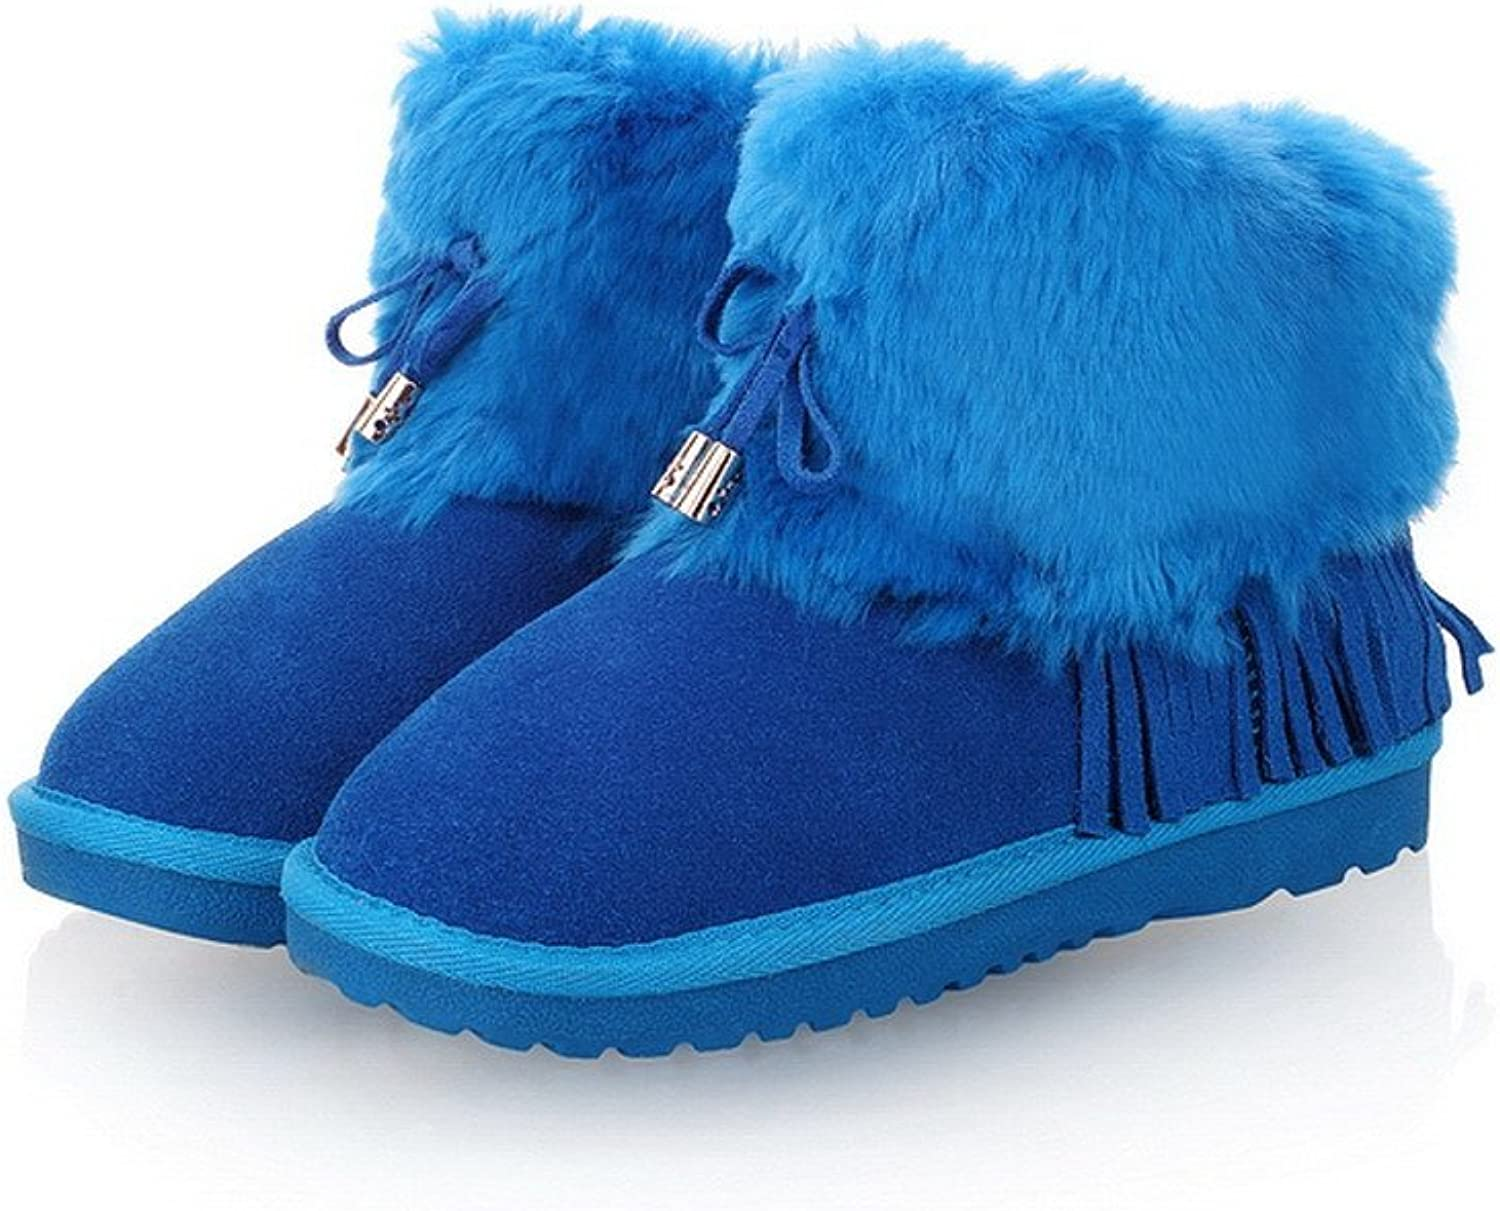 WeenFashion Womens Closed Round Toe Frosted Cow Leather Artificial Plush Solid Boots with Tassels, bluee, 7.5 B(M) US